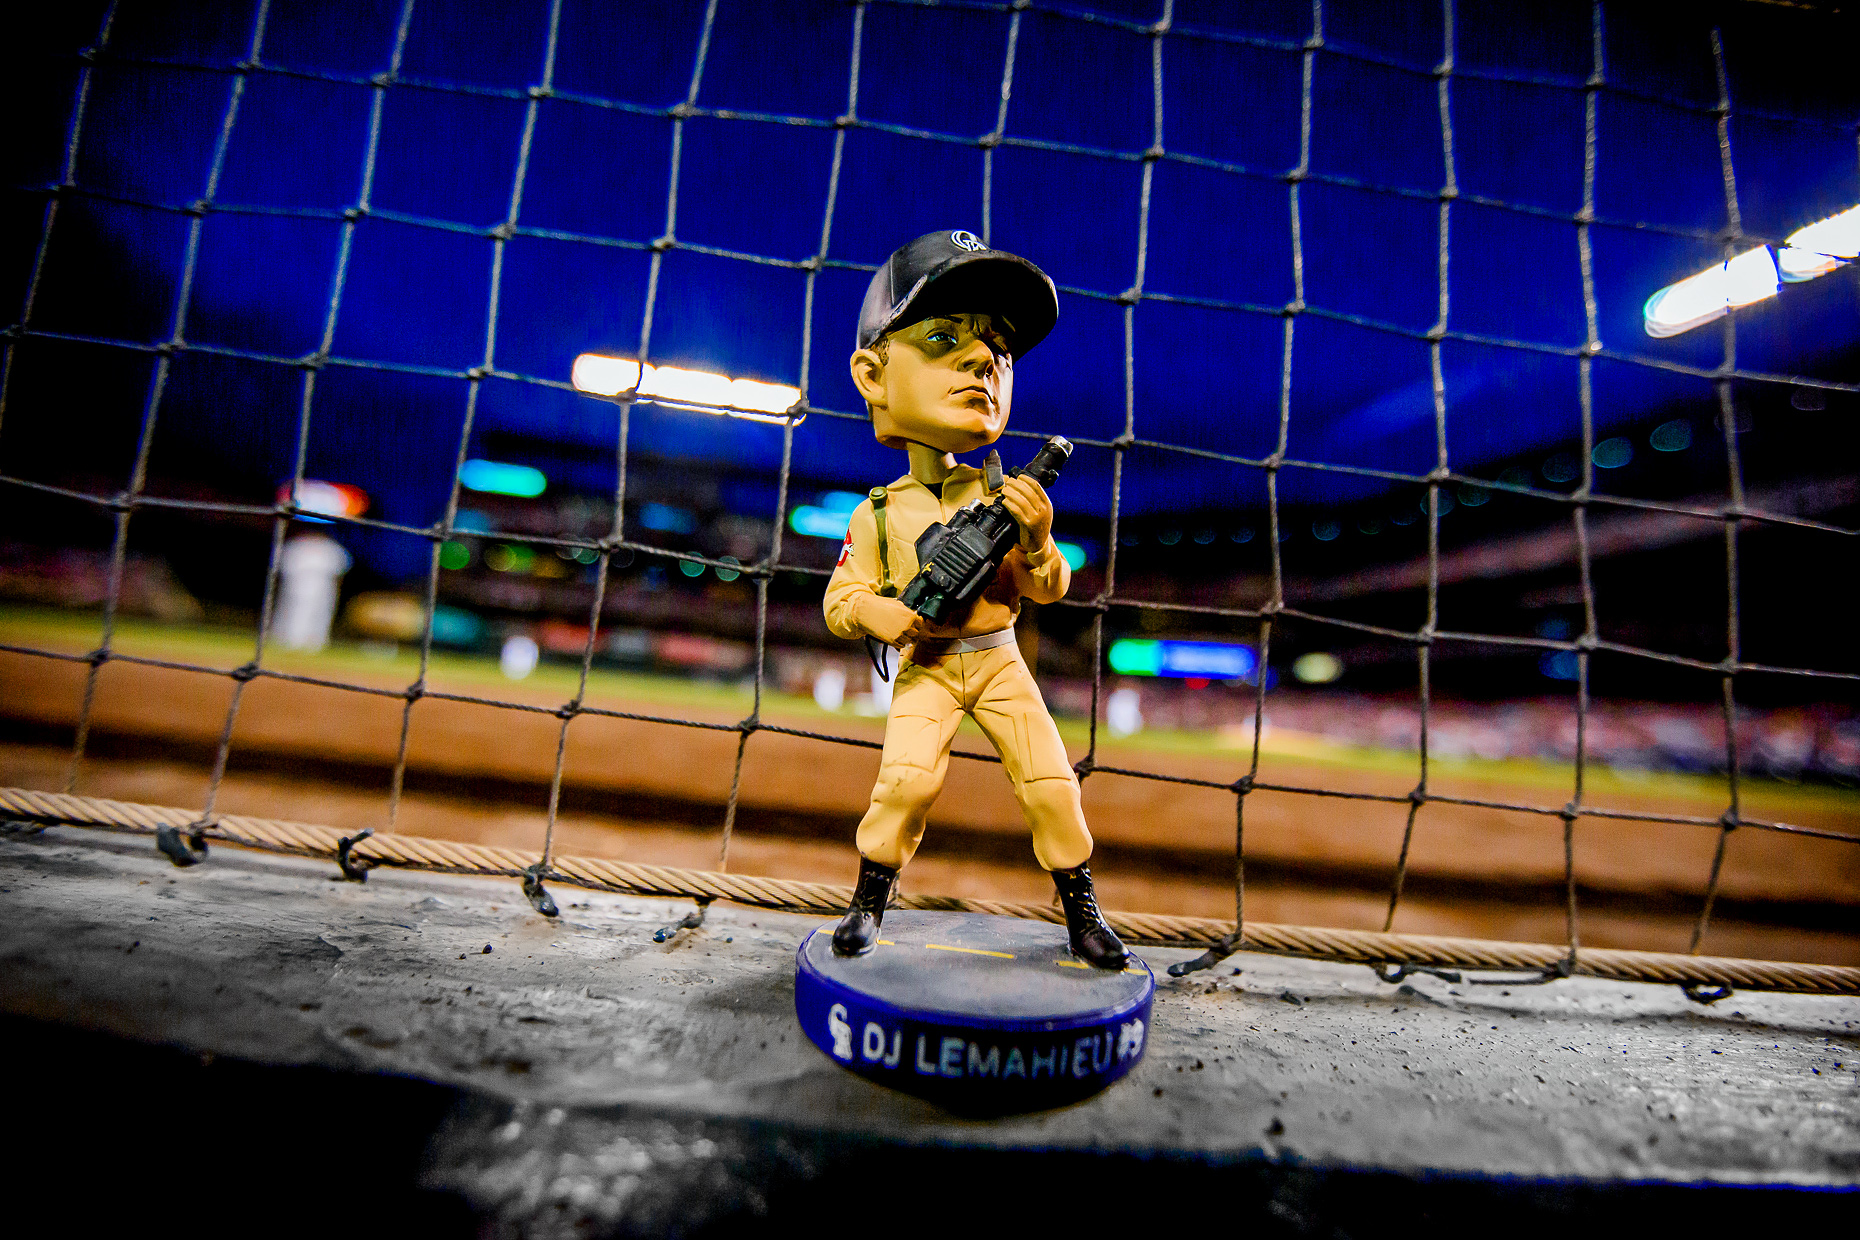 chip litherland lock and land rockies sports photography denver 0027.JPG